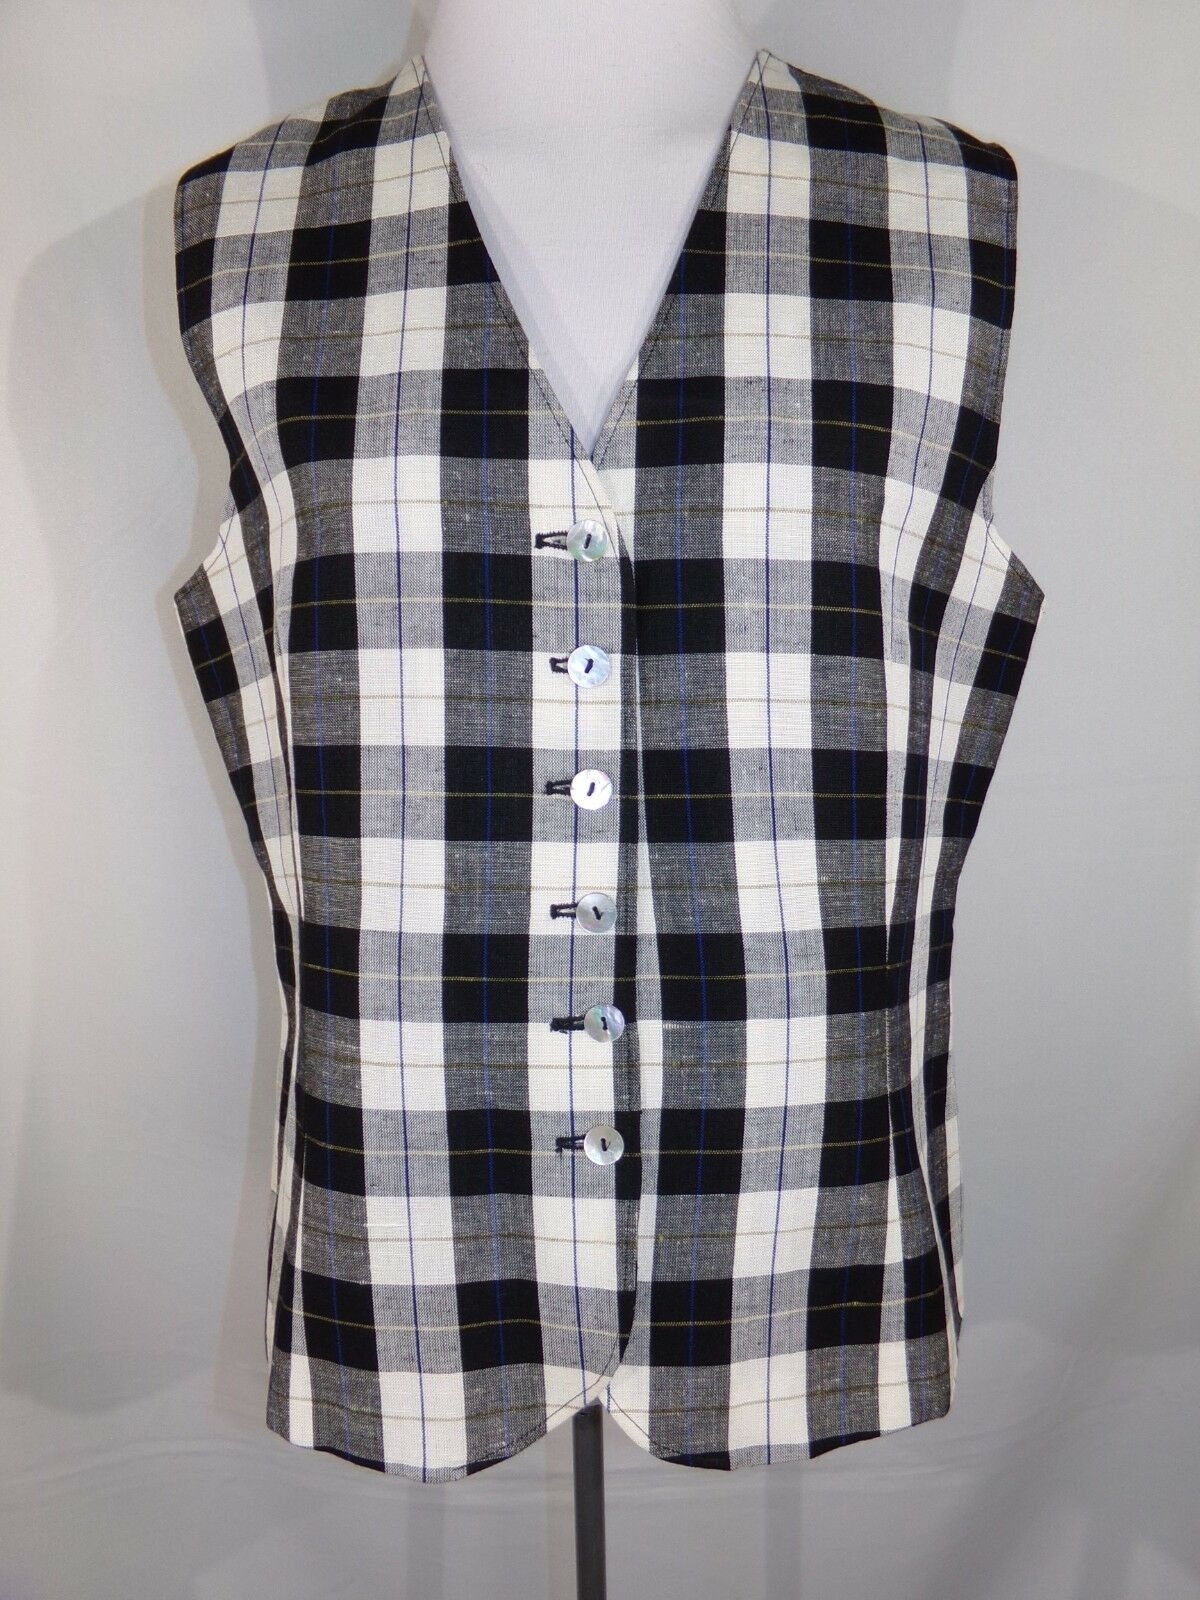 DAVID N. Woman's Black White Check Sleeveless Button Up Lined Linen Blend Vest